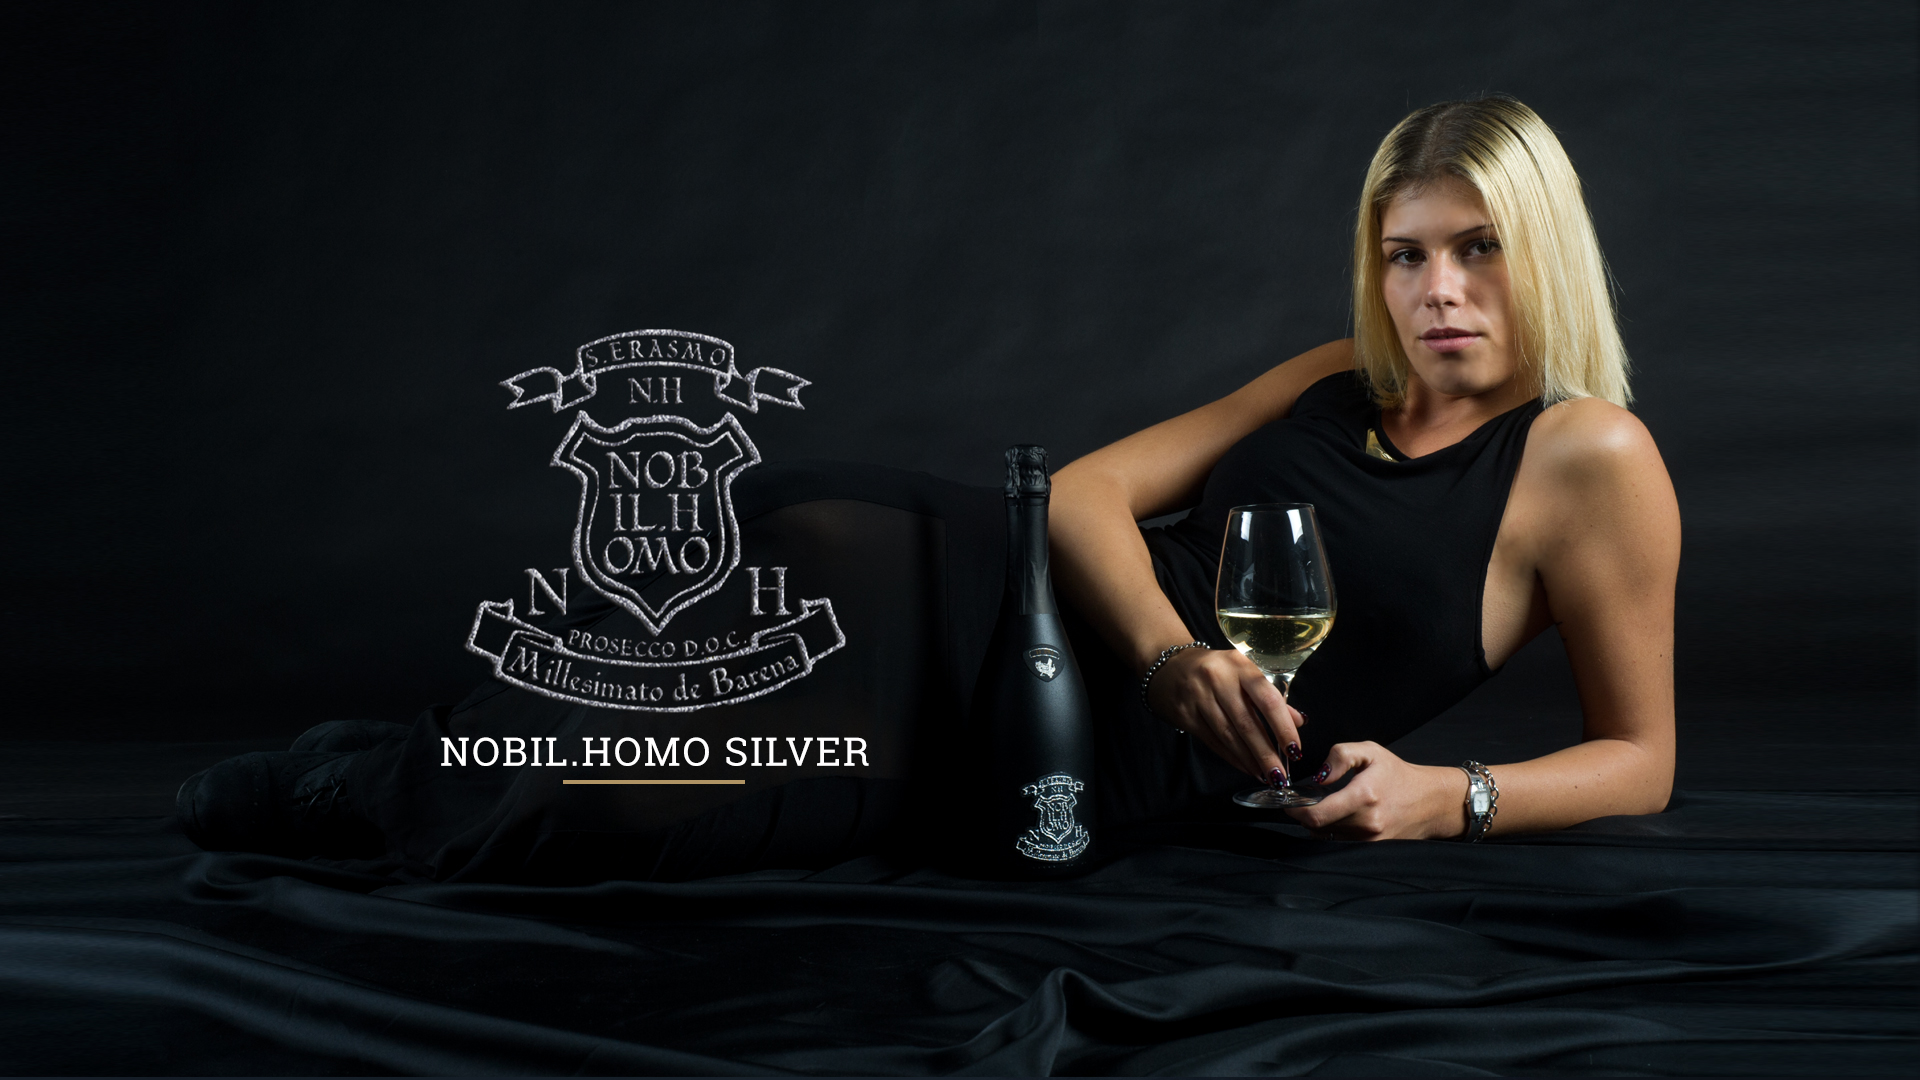 NOBIL.HOMO SILVER it